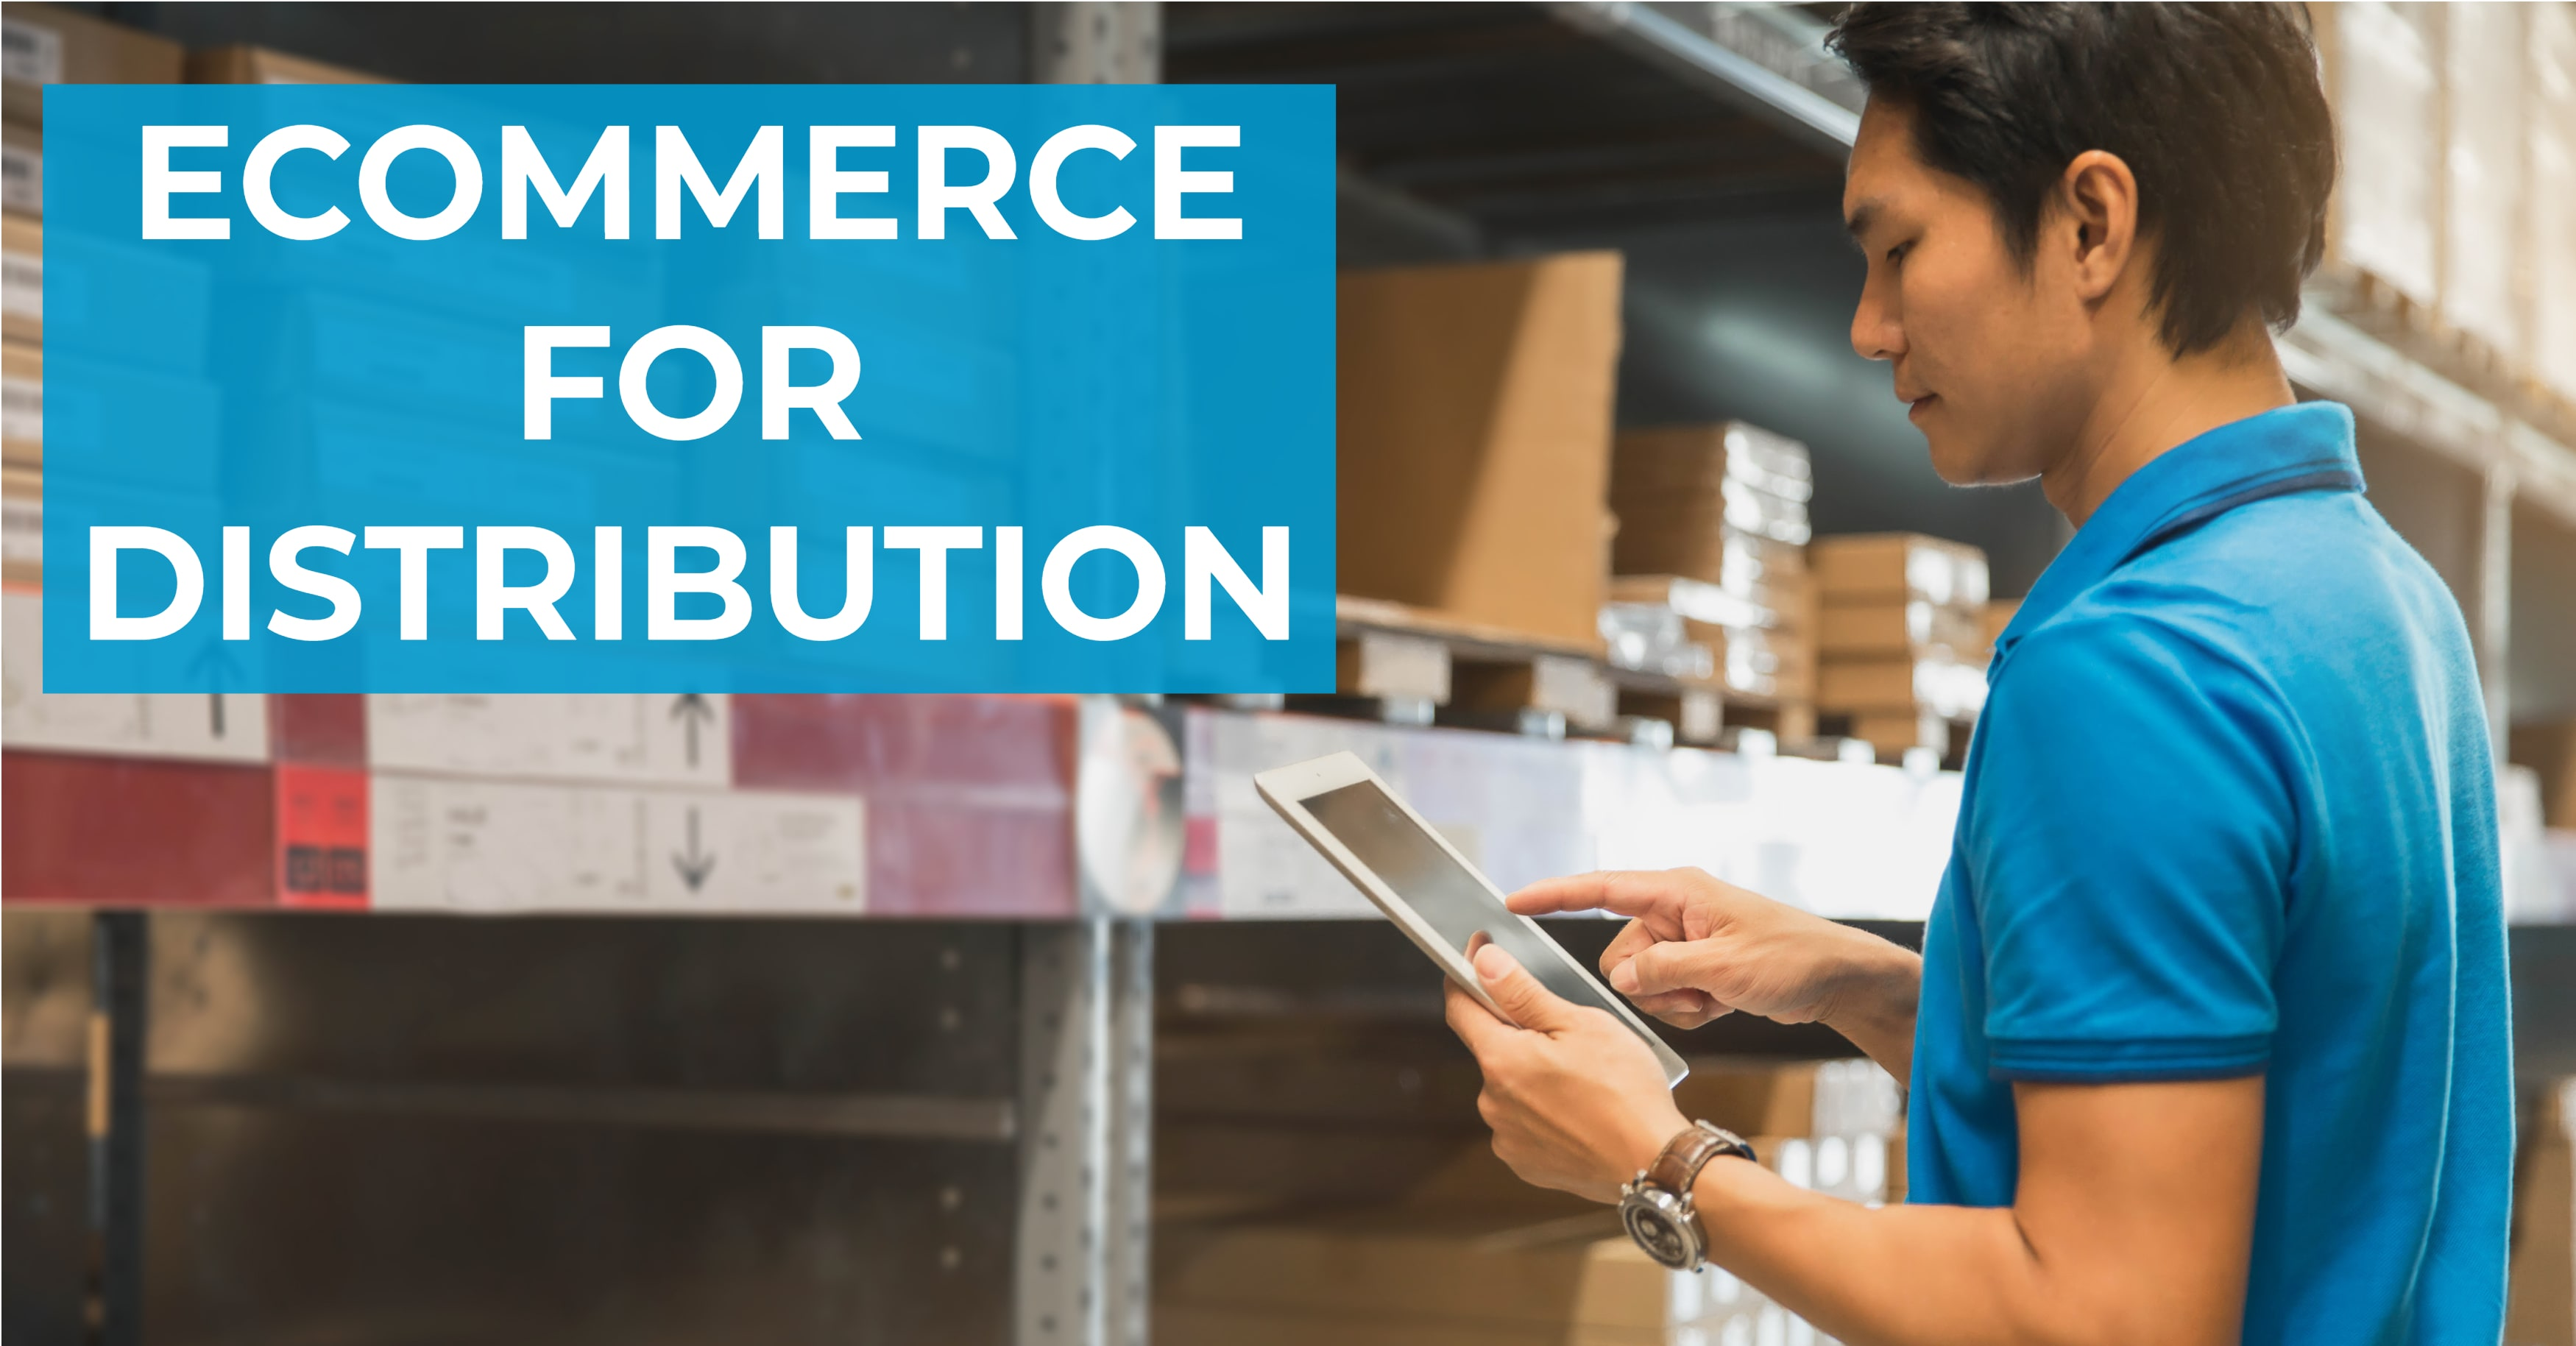 Why Do Distributors Need to Invest in eCommerce?